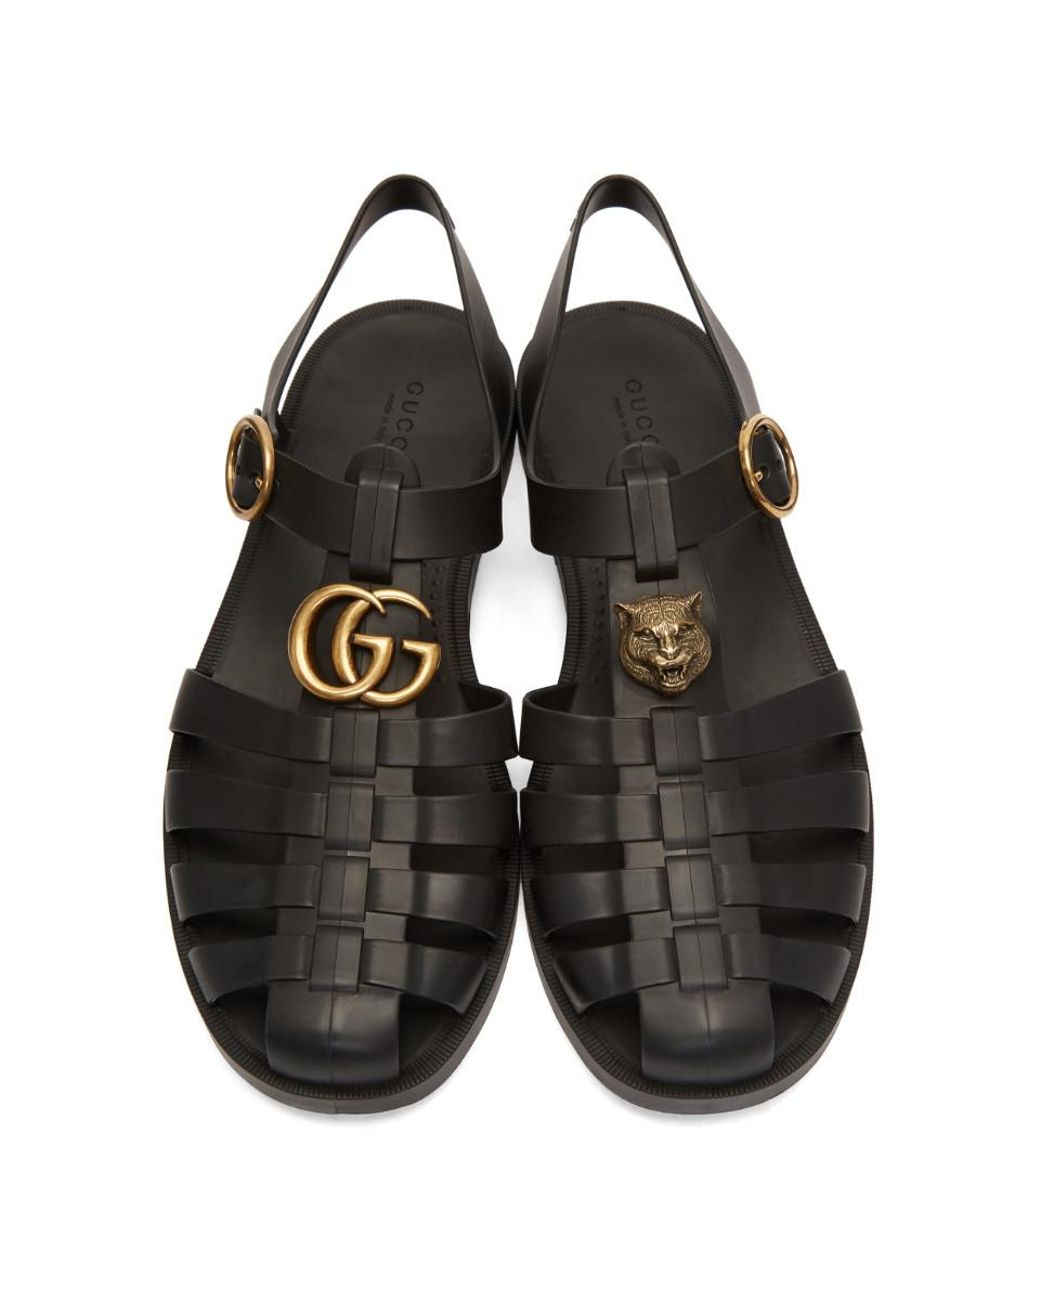 f19c114b1f3 Lyst - Gucci Rubber Buckle Strap Sandals in Black for Men - Save 6%